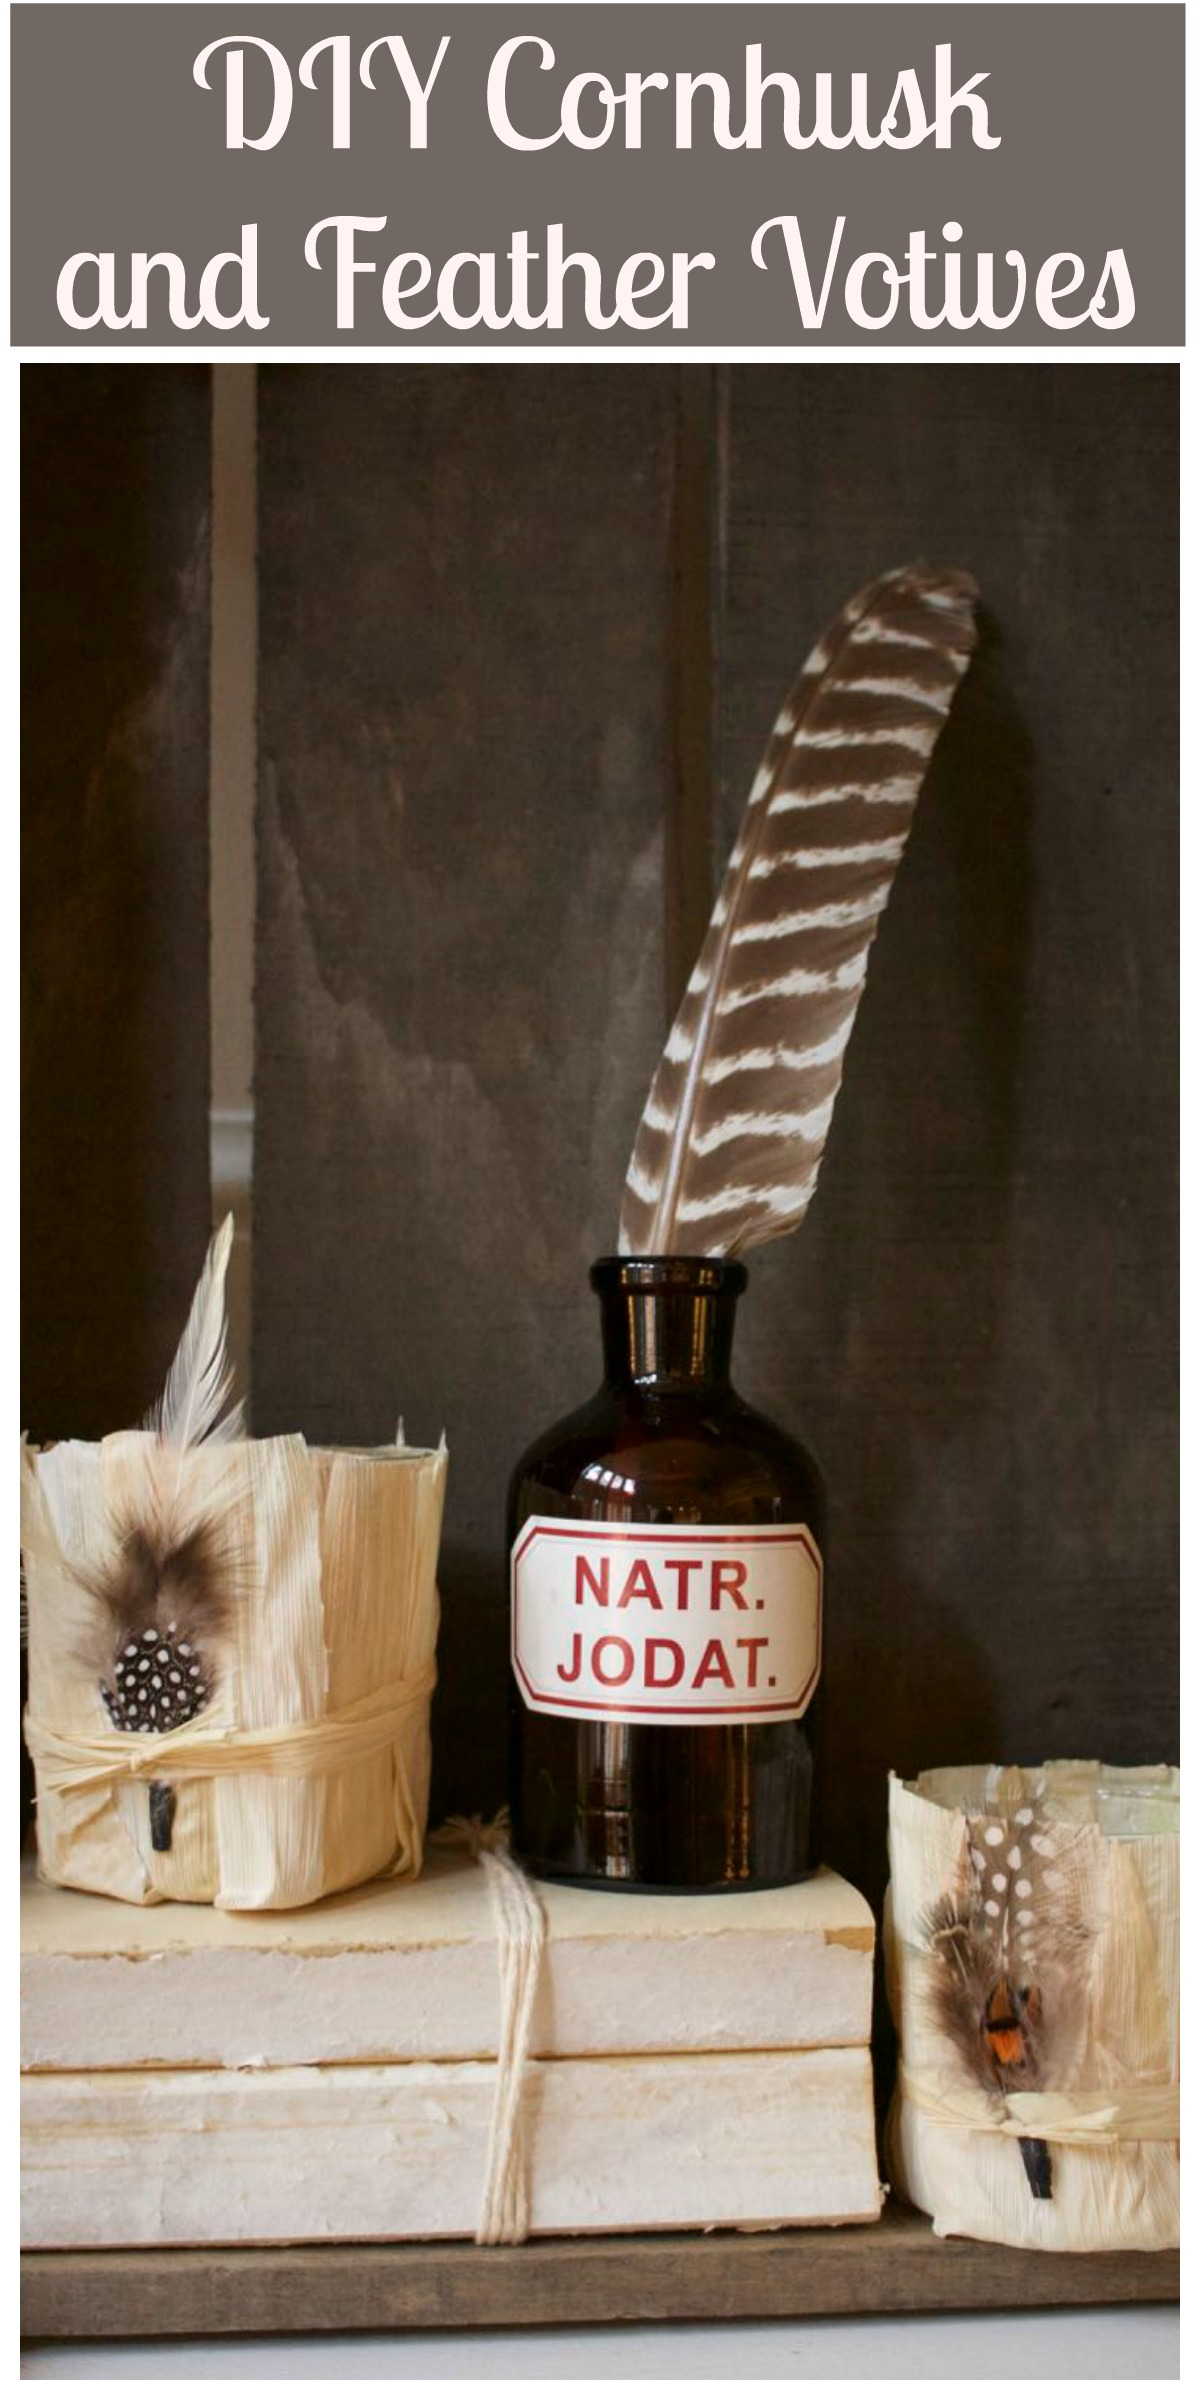 DIY Cornhusk and Feather Votives - Perfect for Fall